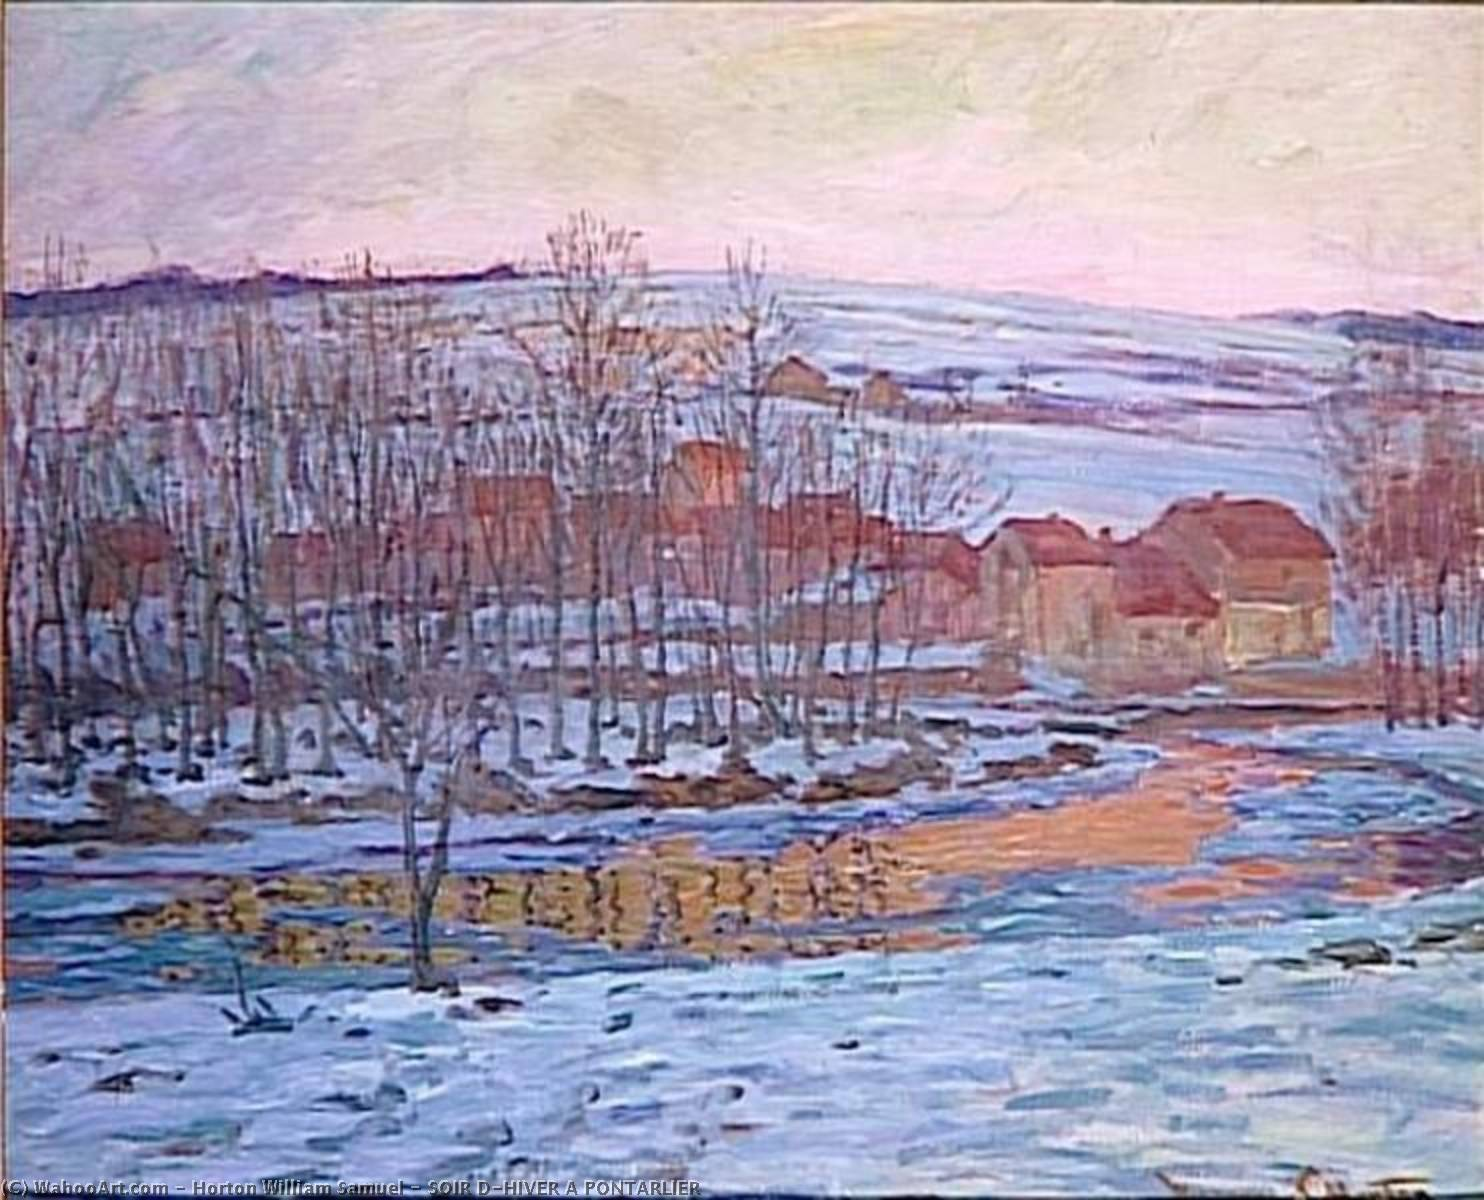 ソワール D'HIVER A ポンタルリエ バイ William Samuel Horton (1865-1936, United States) | WahooArt.com